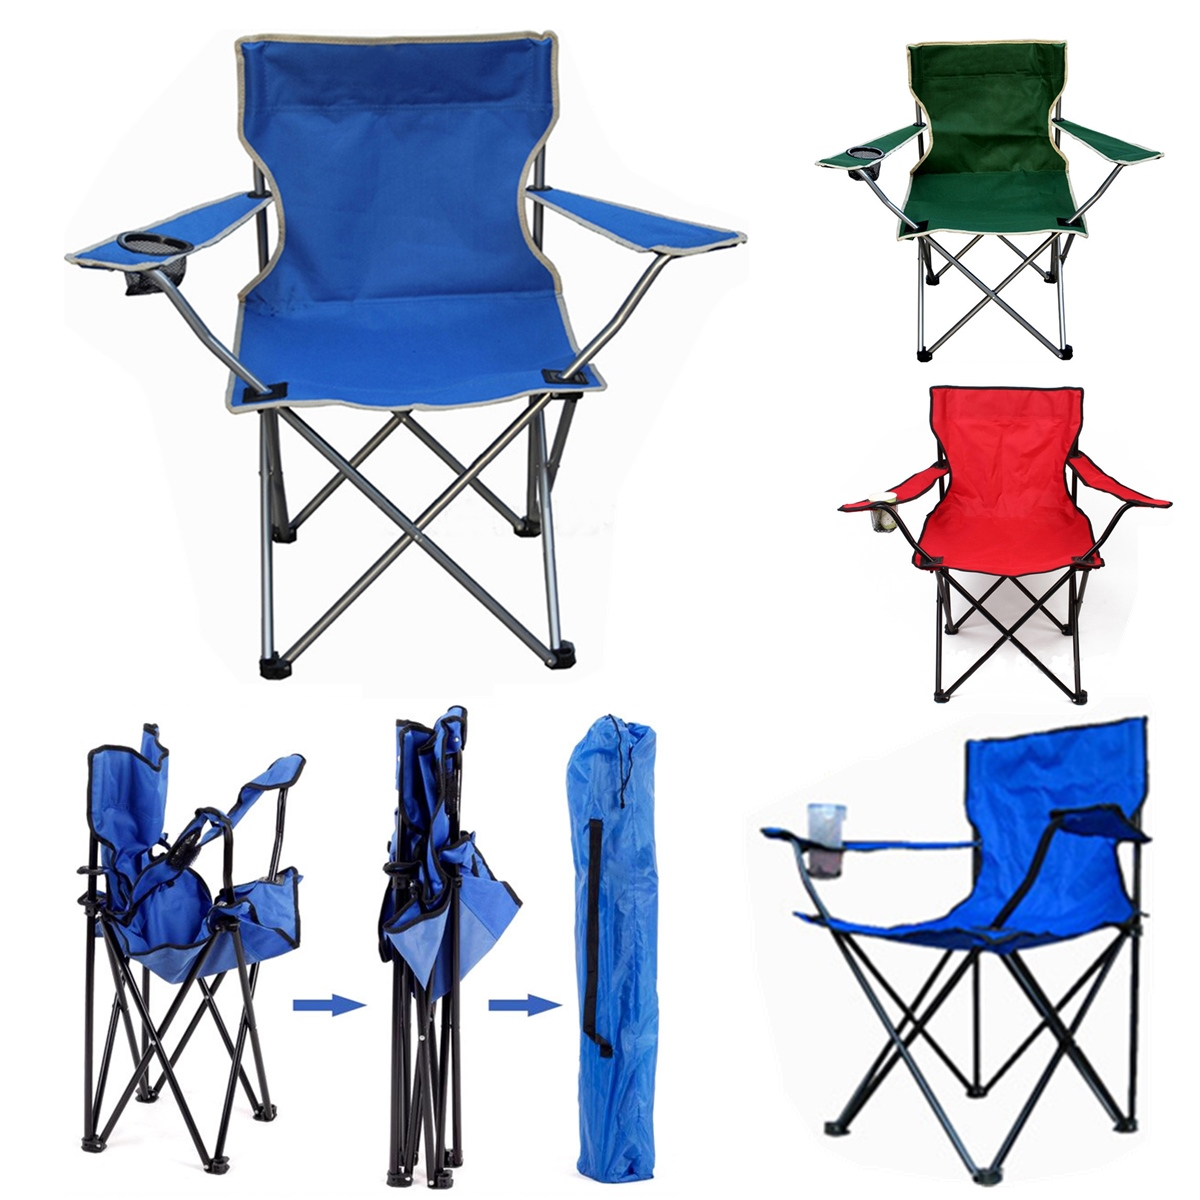 Outdoor Portable Folding Chair Fishing Camping Beach Picnic Chair Seat With Cup Holder